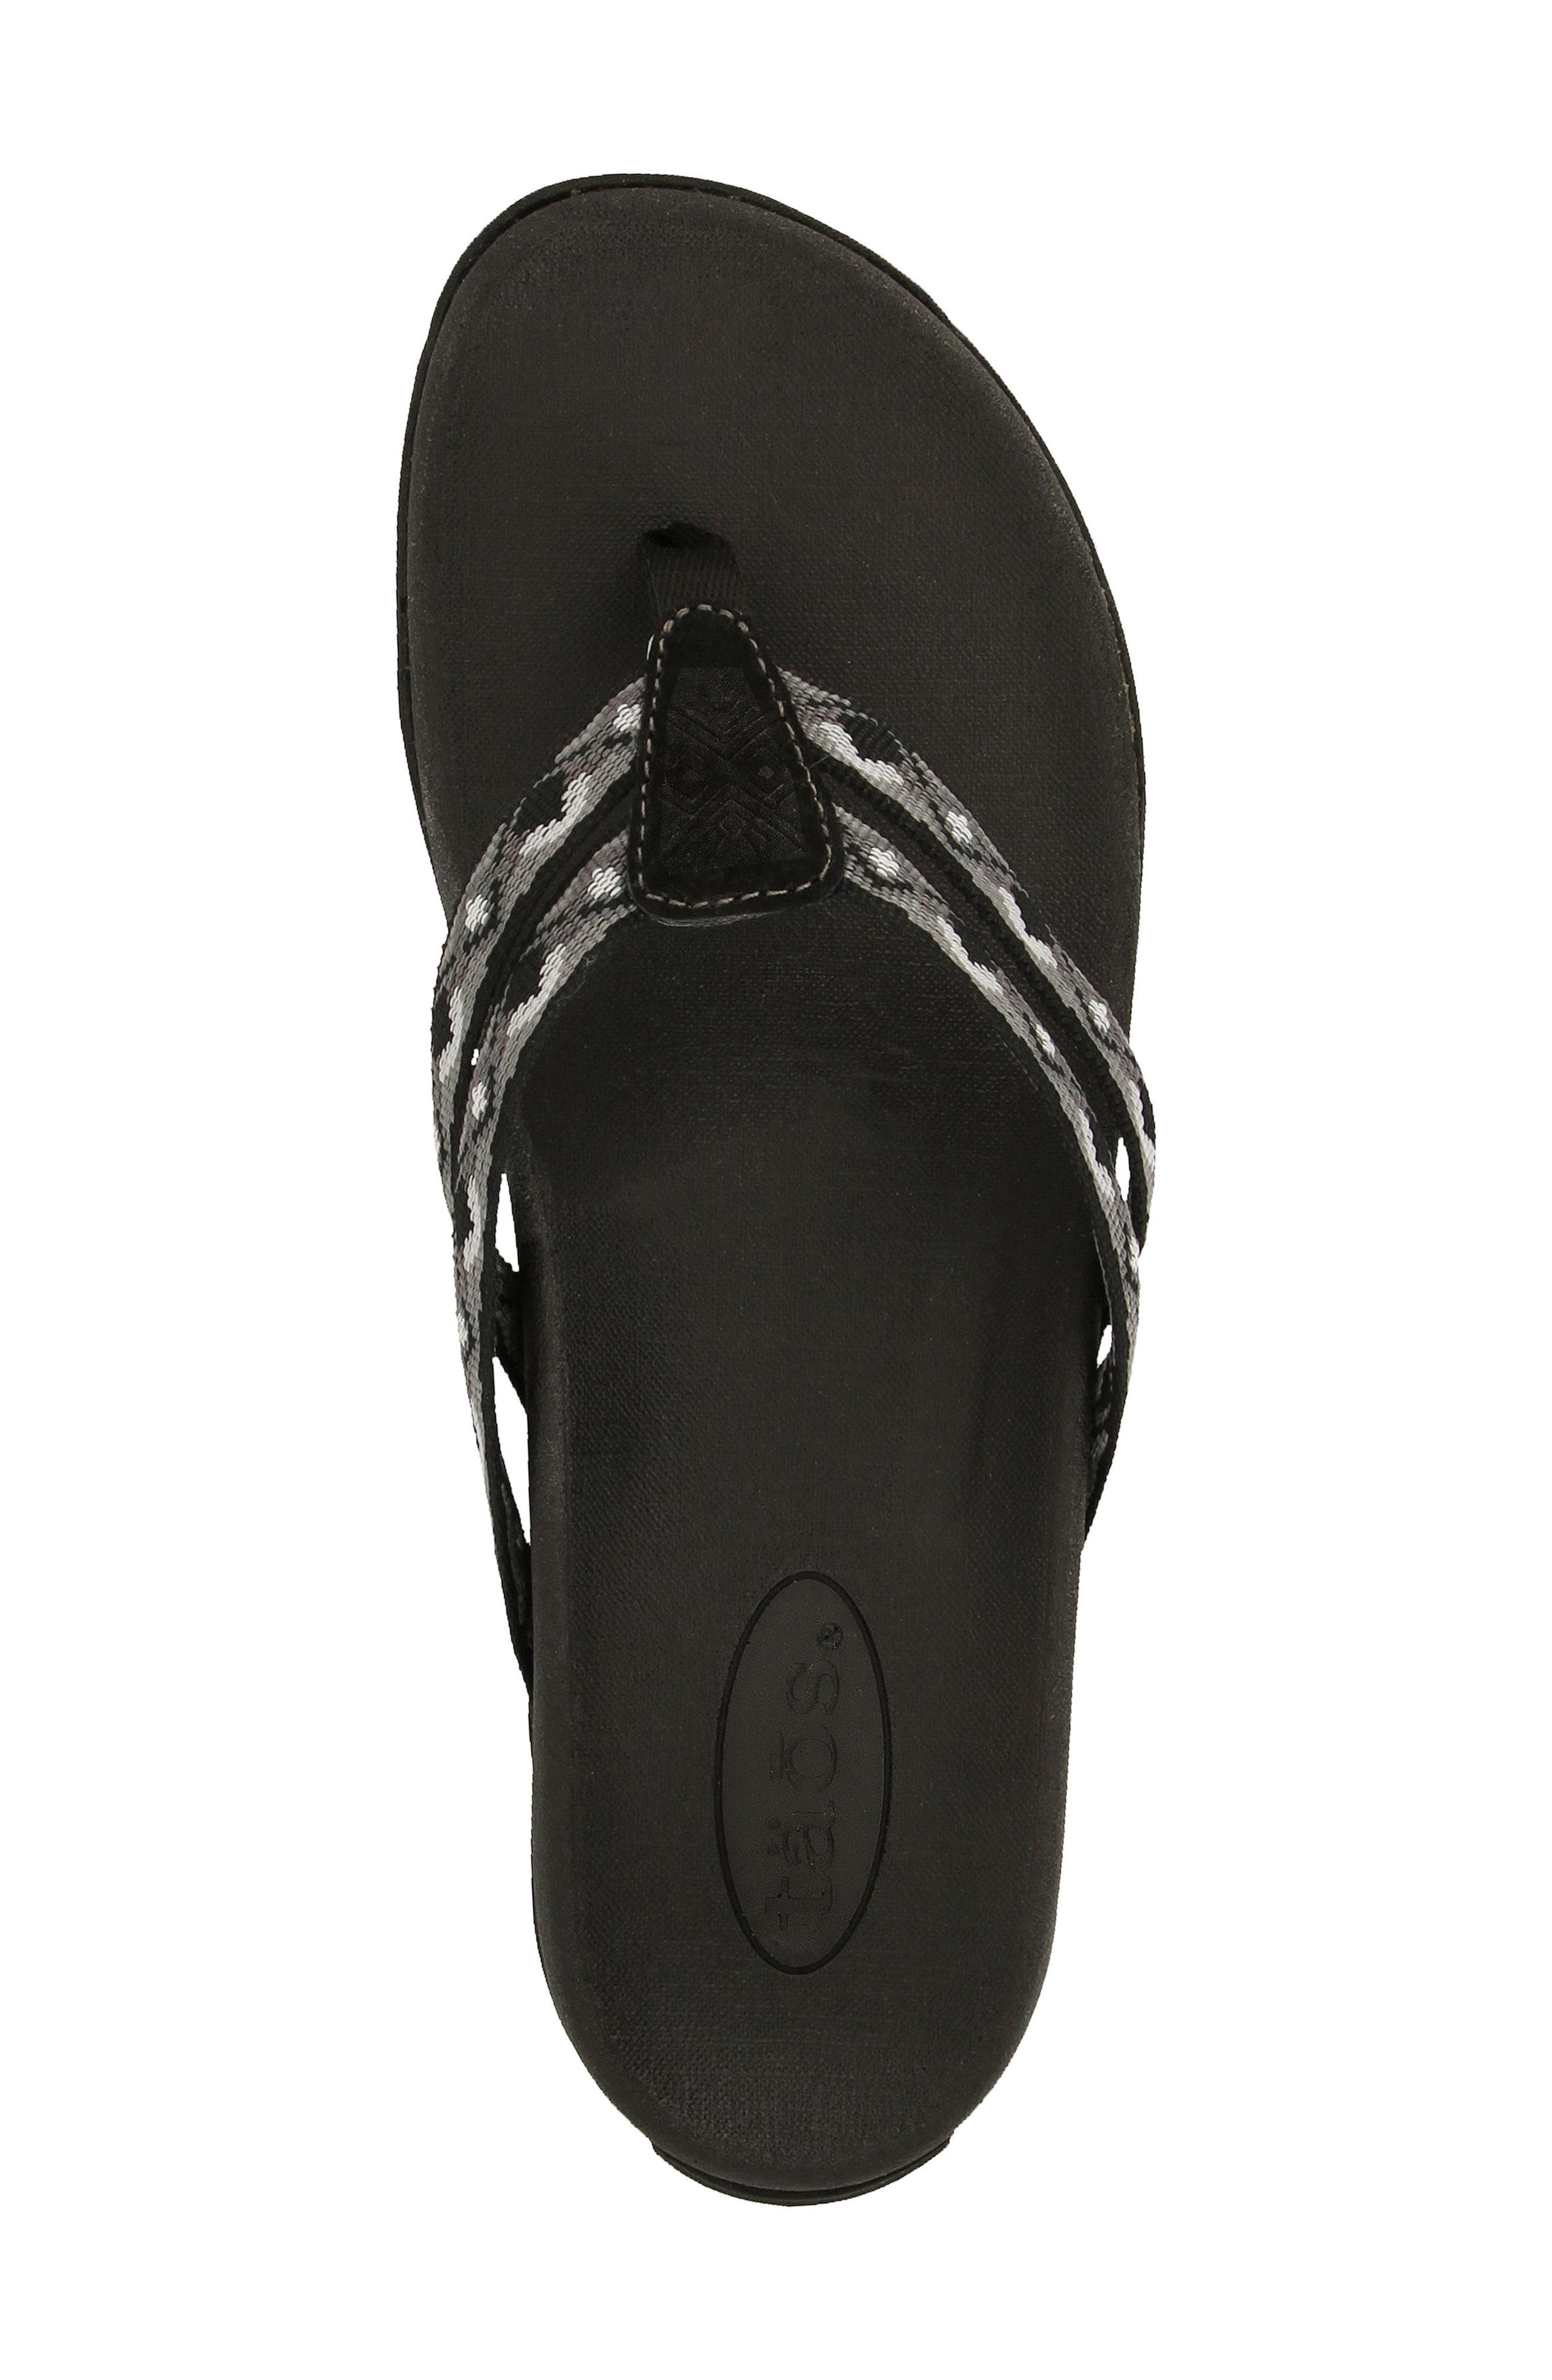 Primo Flip Flop,                             Alternate thumbnail 3, color,                             BLACK/ WHITE FABRIC